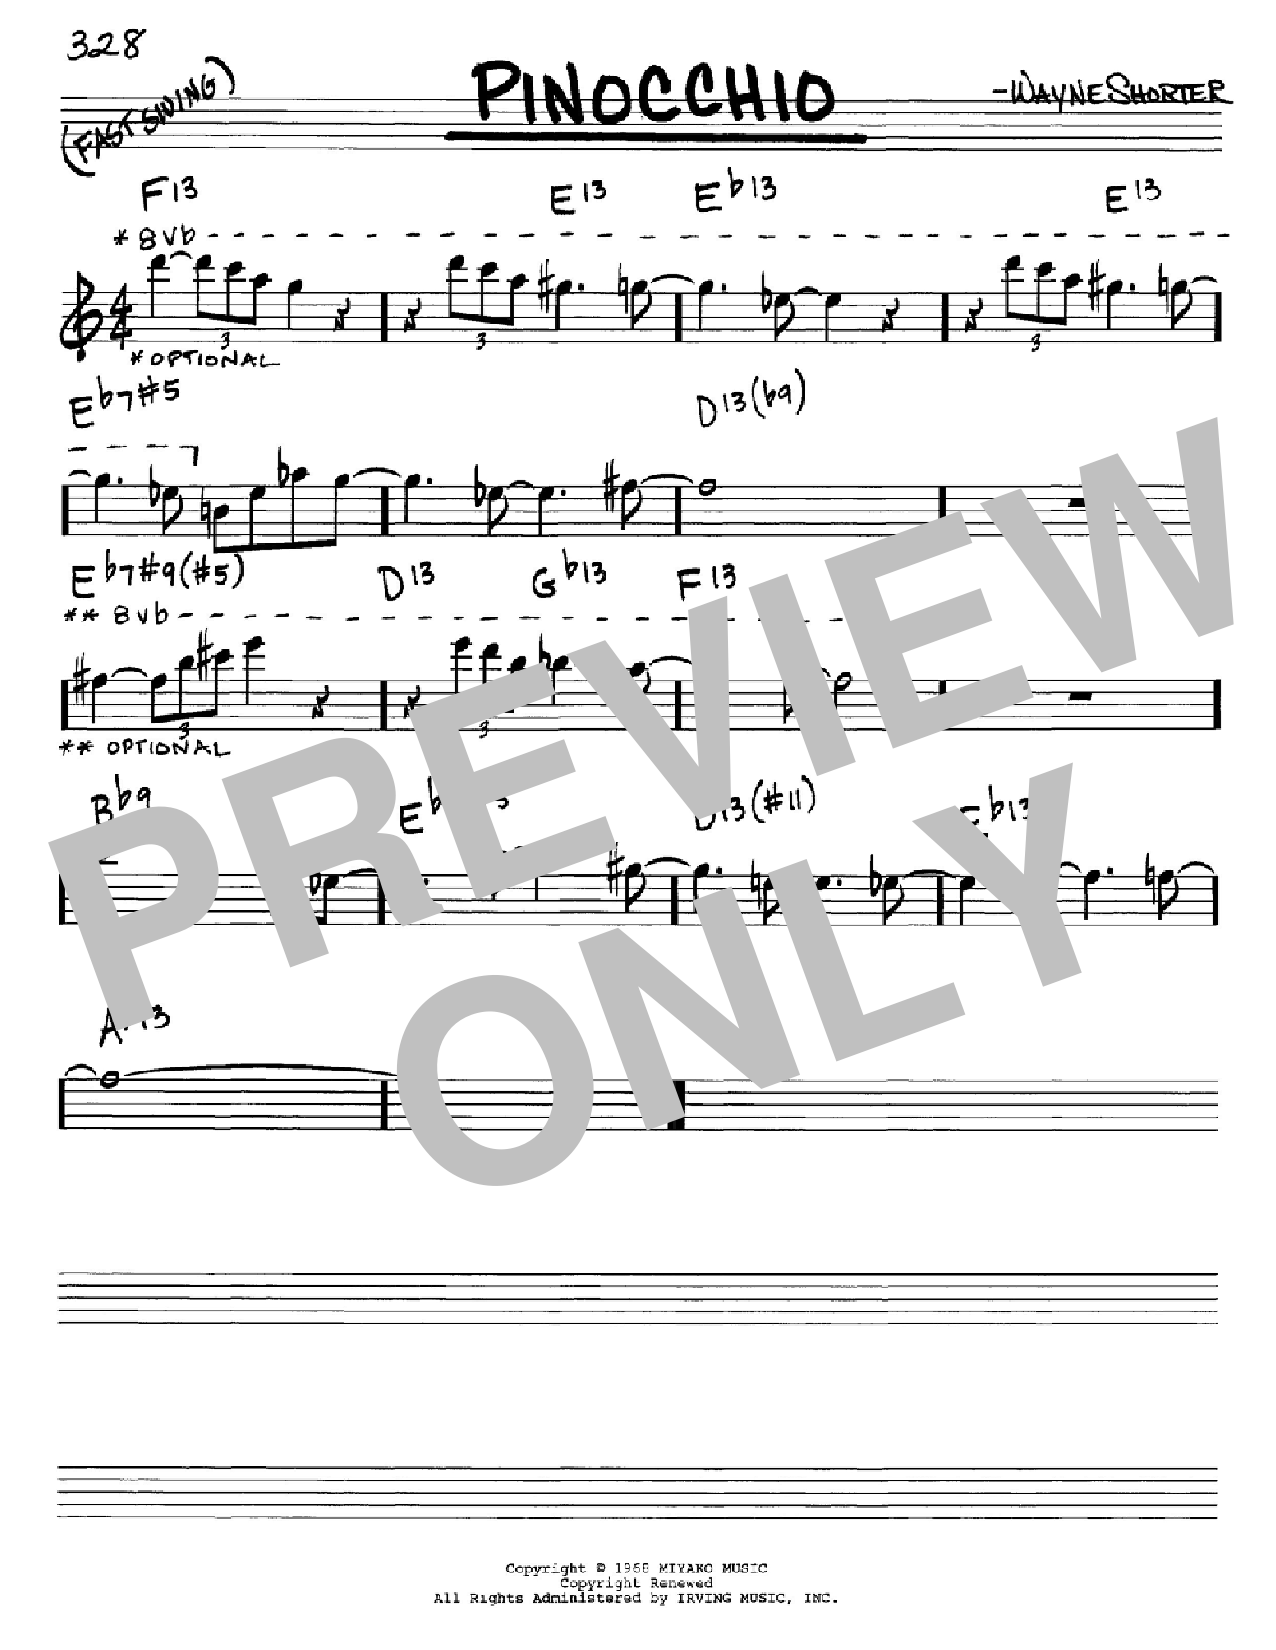 Pinocchio Sheet Music